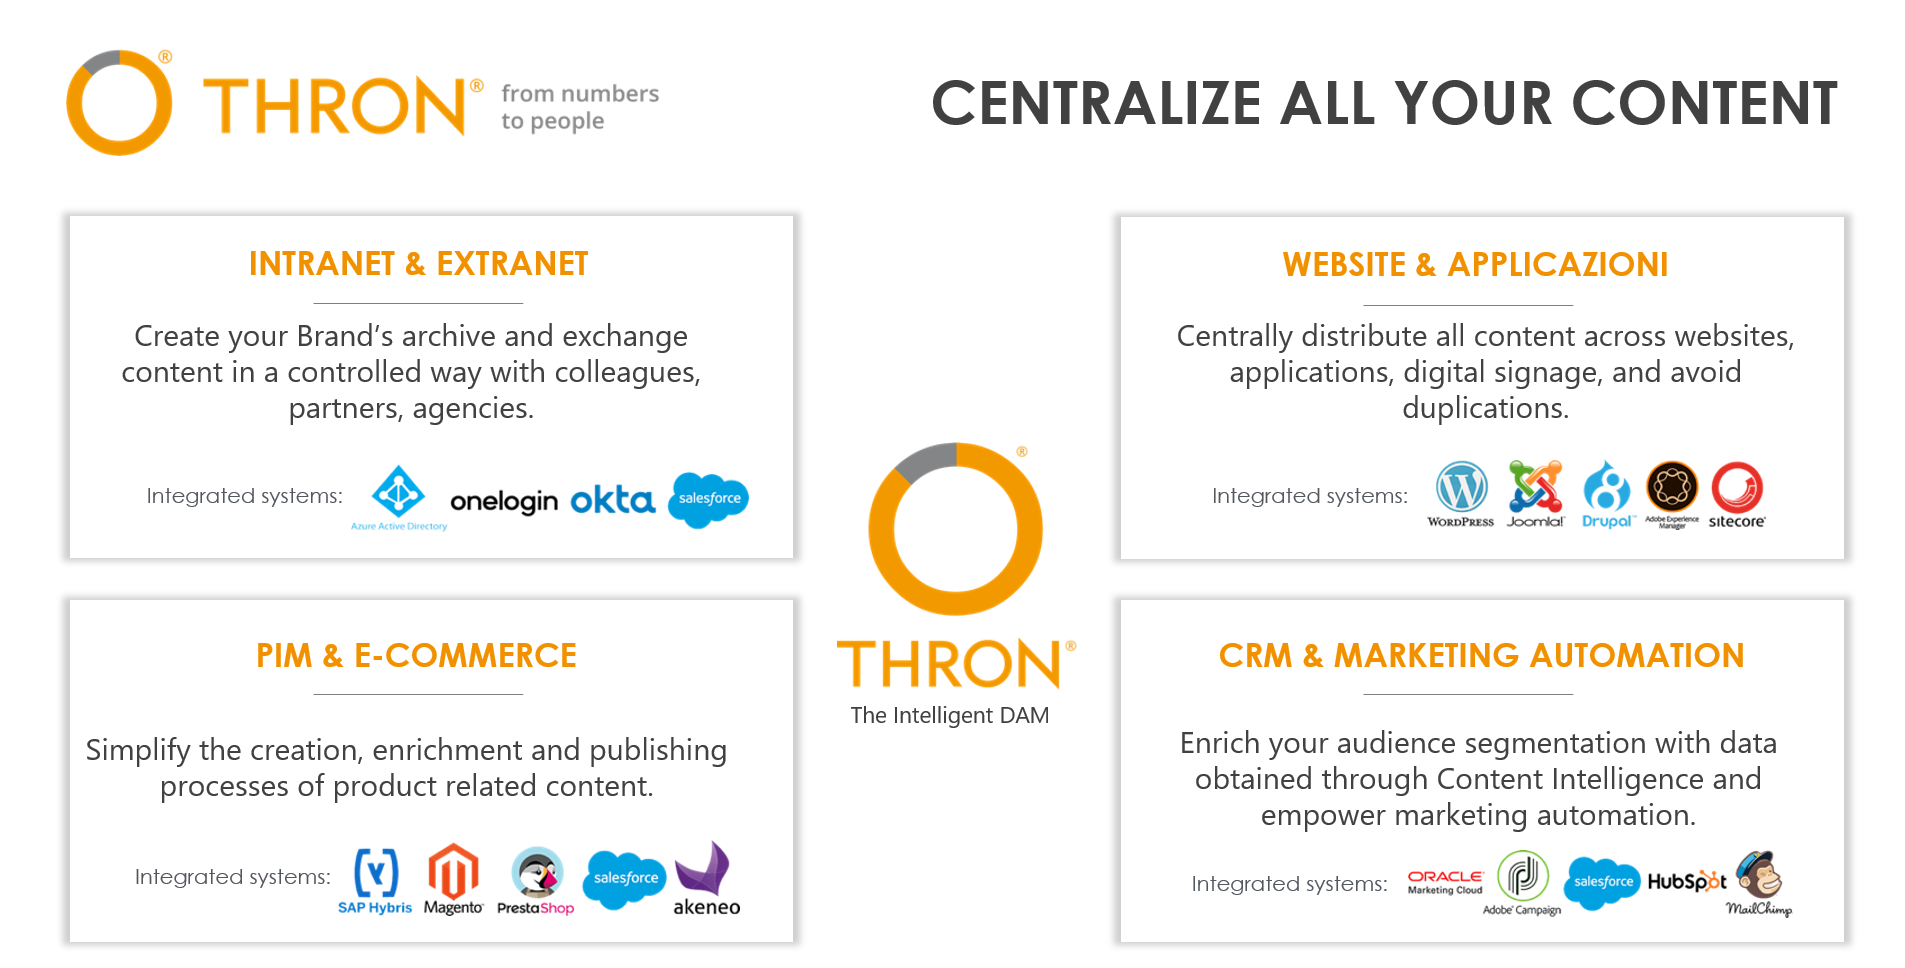 Centralize all your content